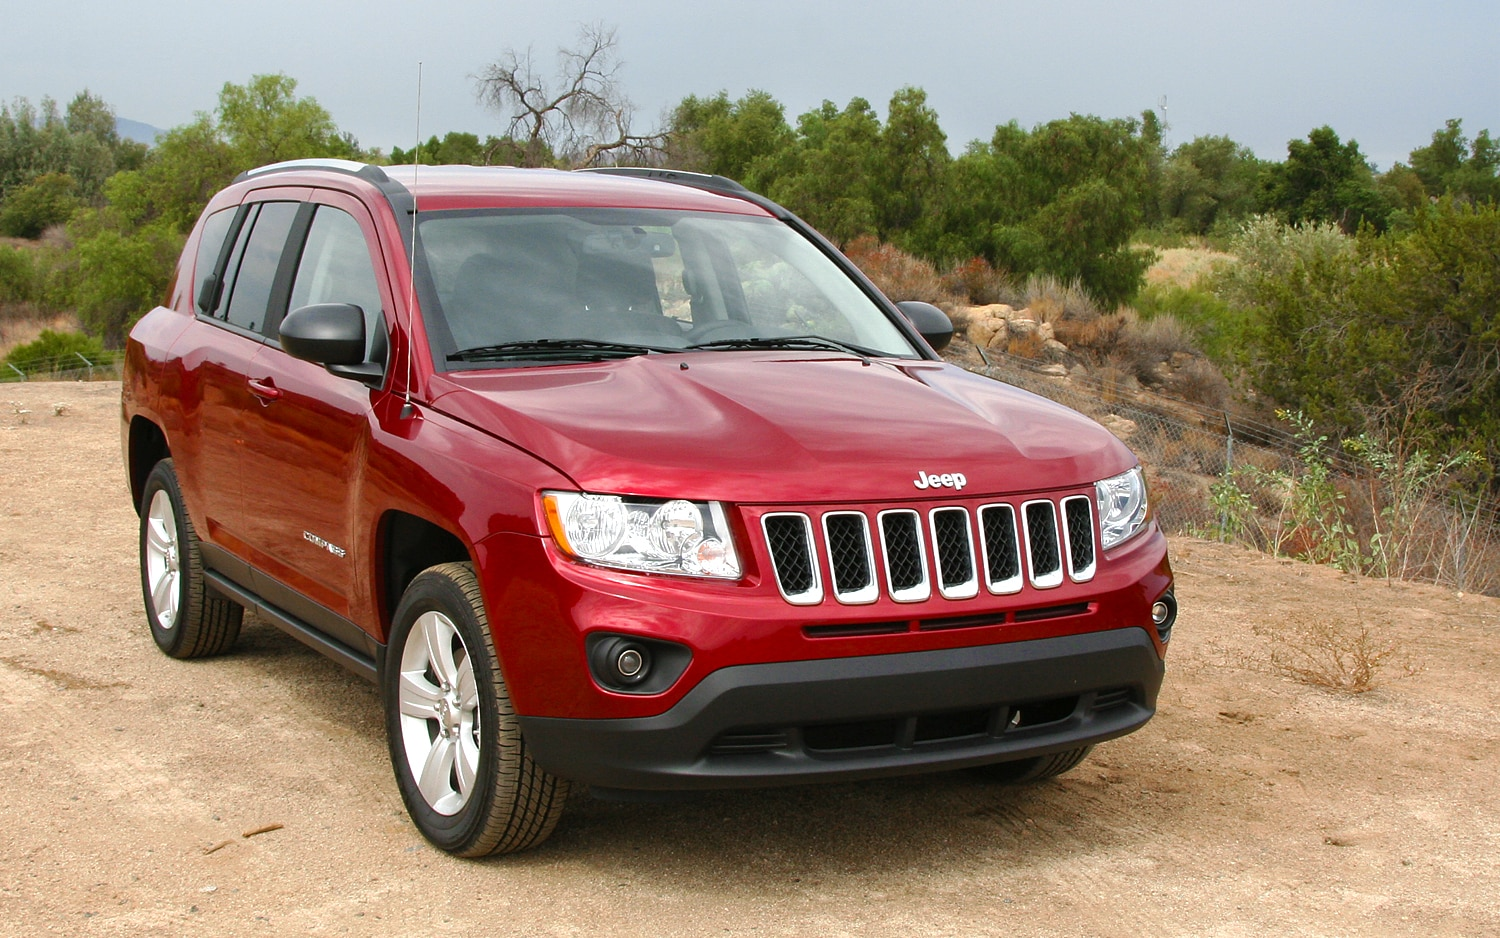 Spied 2014 Jeep Compass Patriot Test Mule